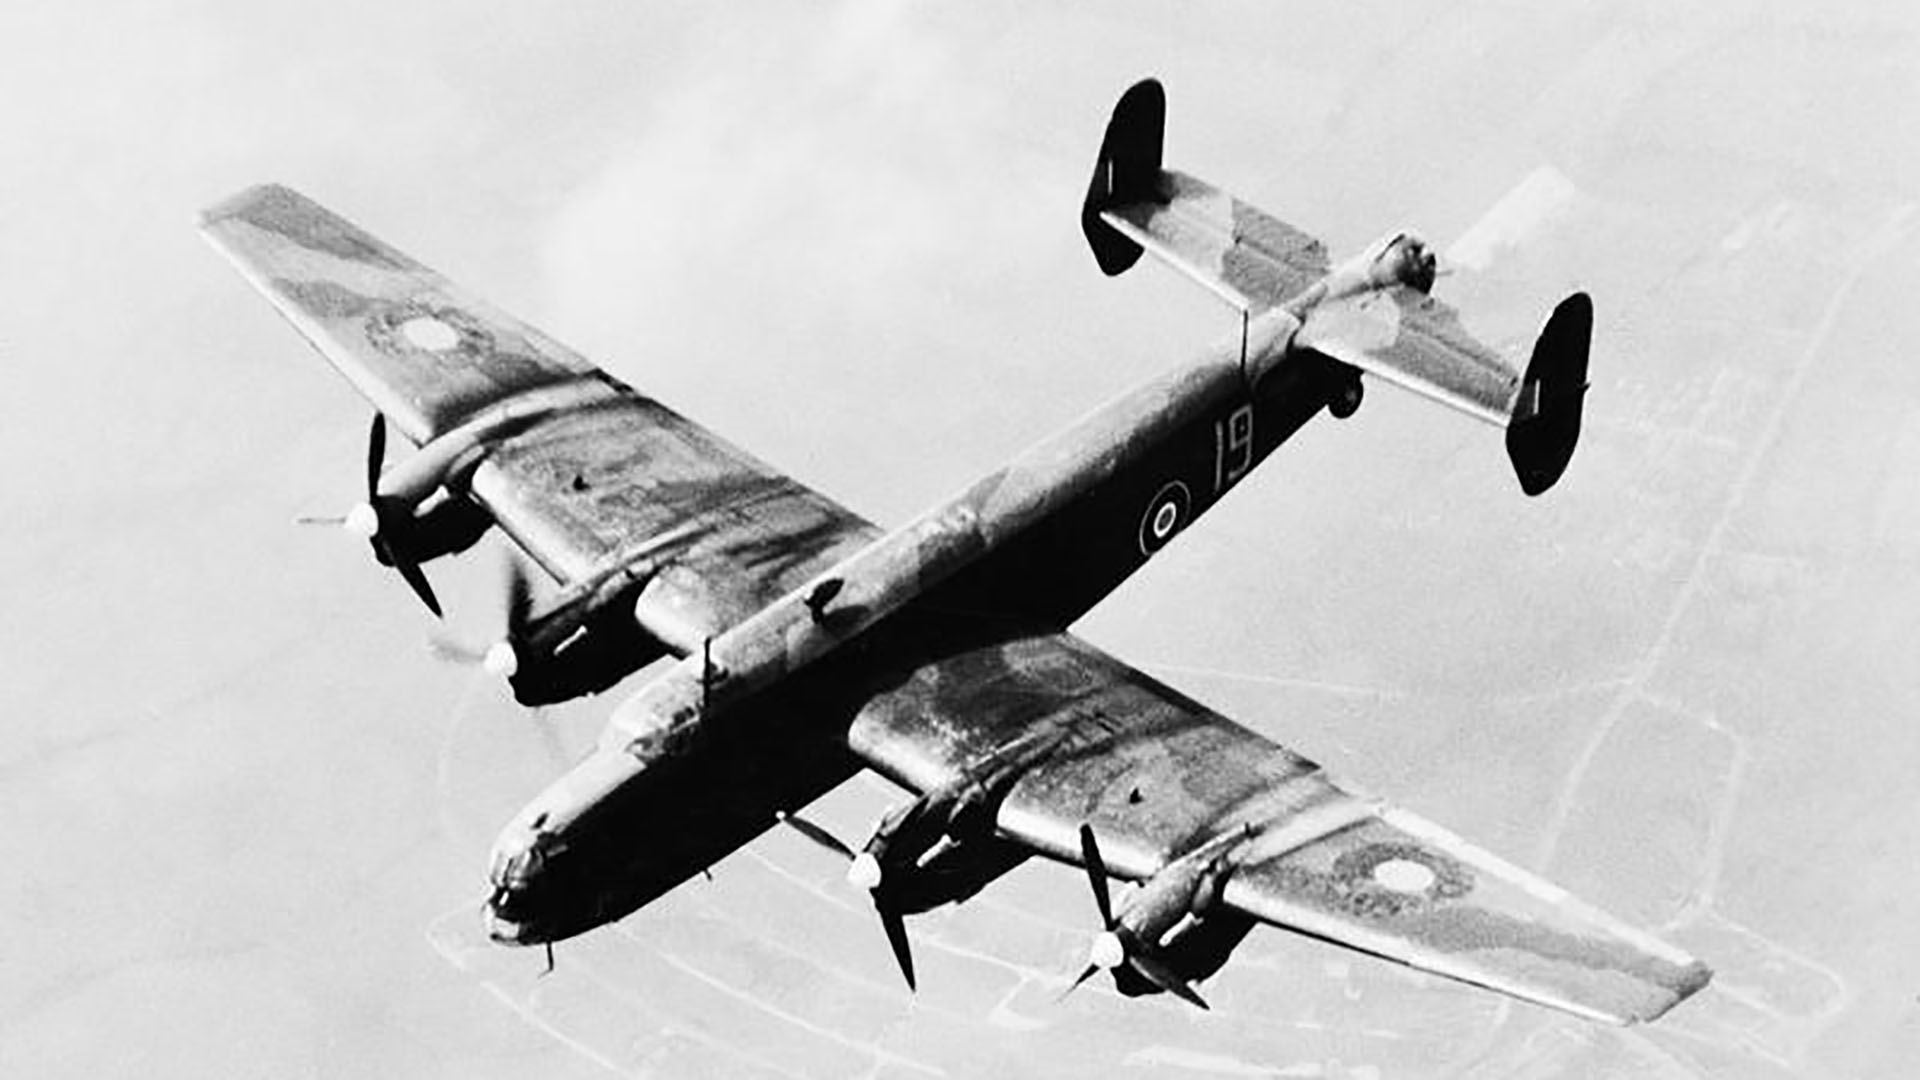 Halifax bomber of No. 1658 Heavy Conversion Unit